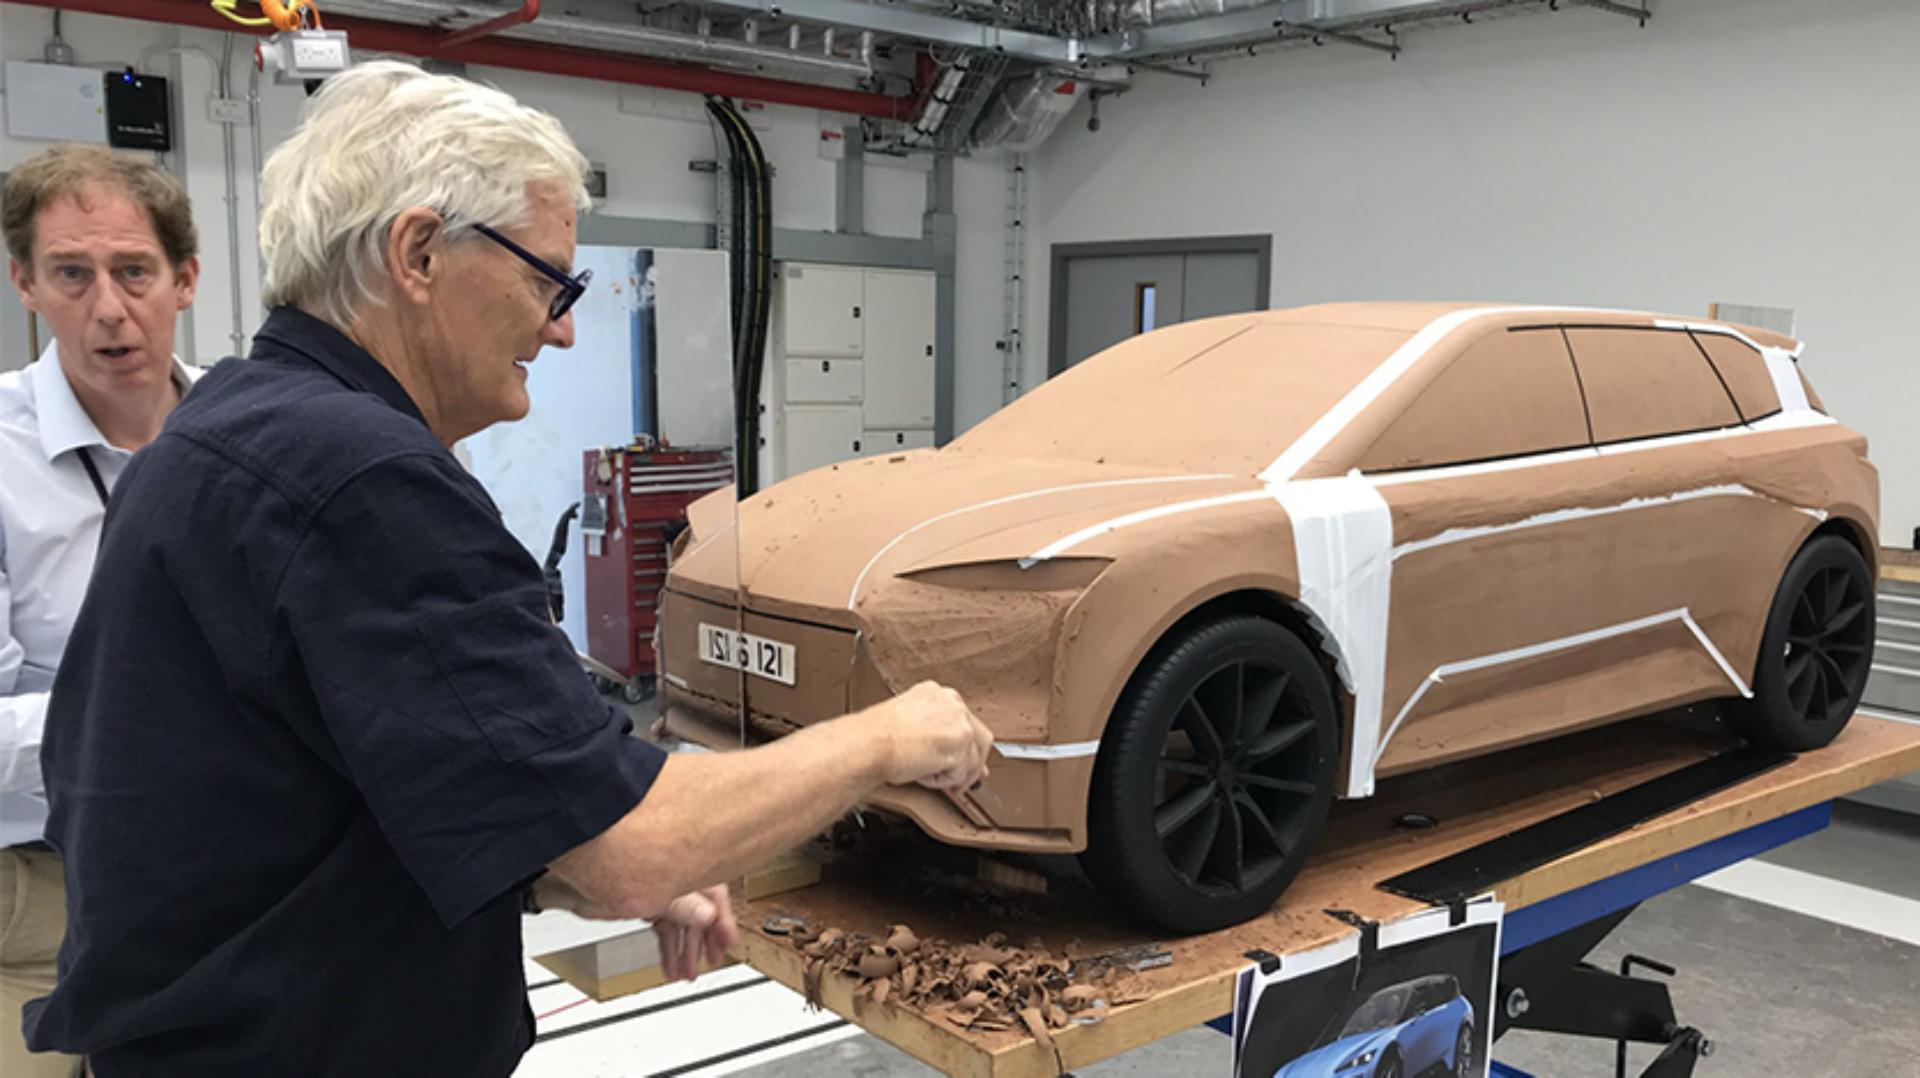 James Dyson with a scale clay model of the electric car